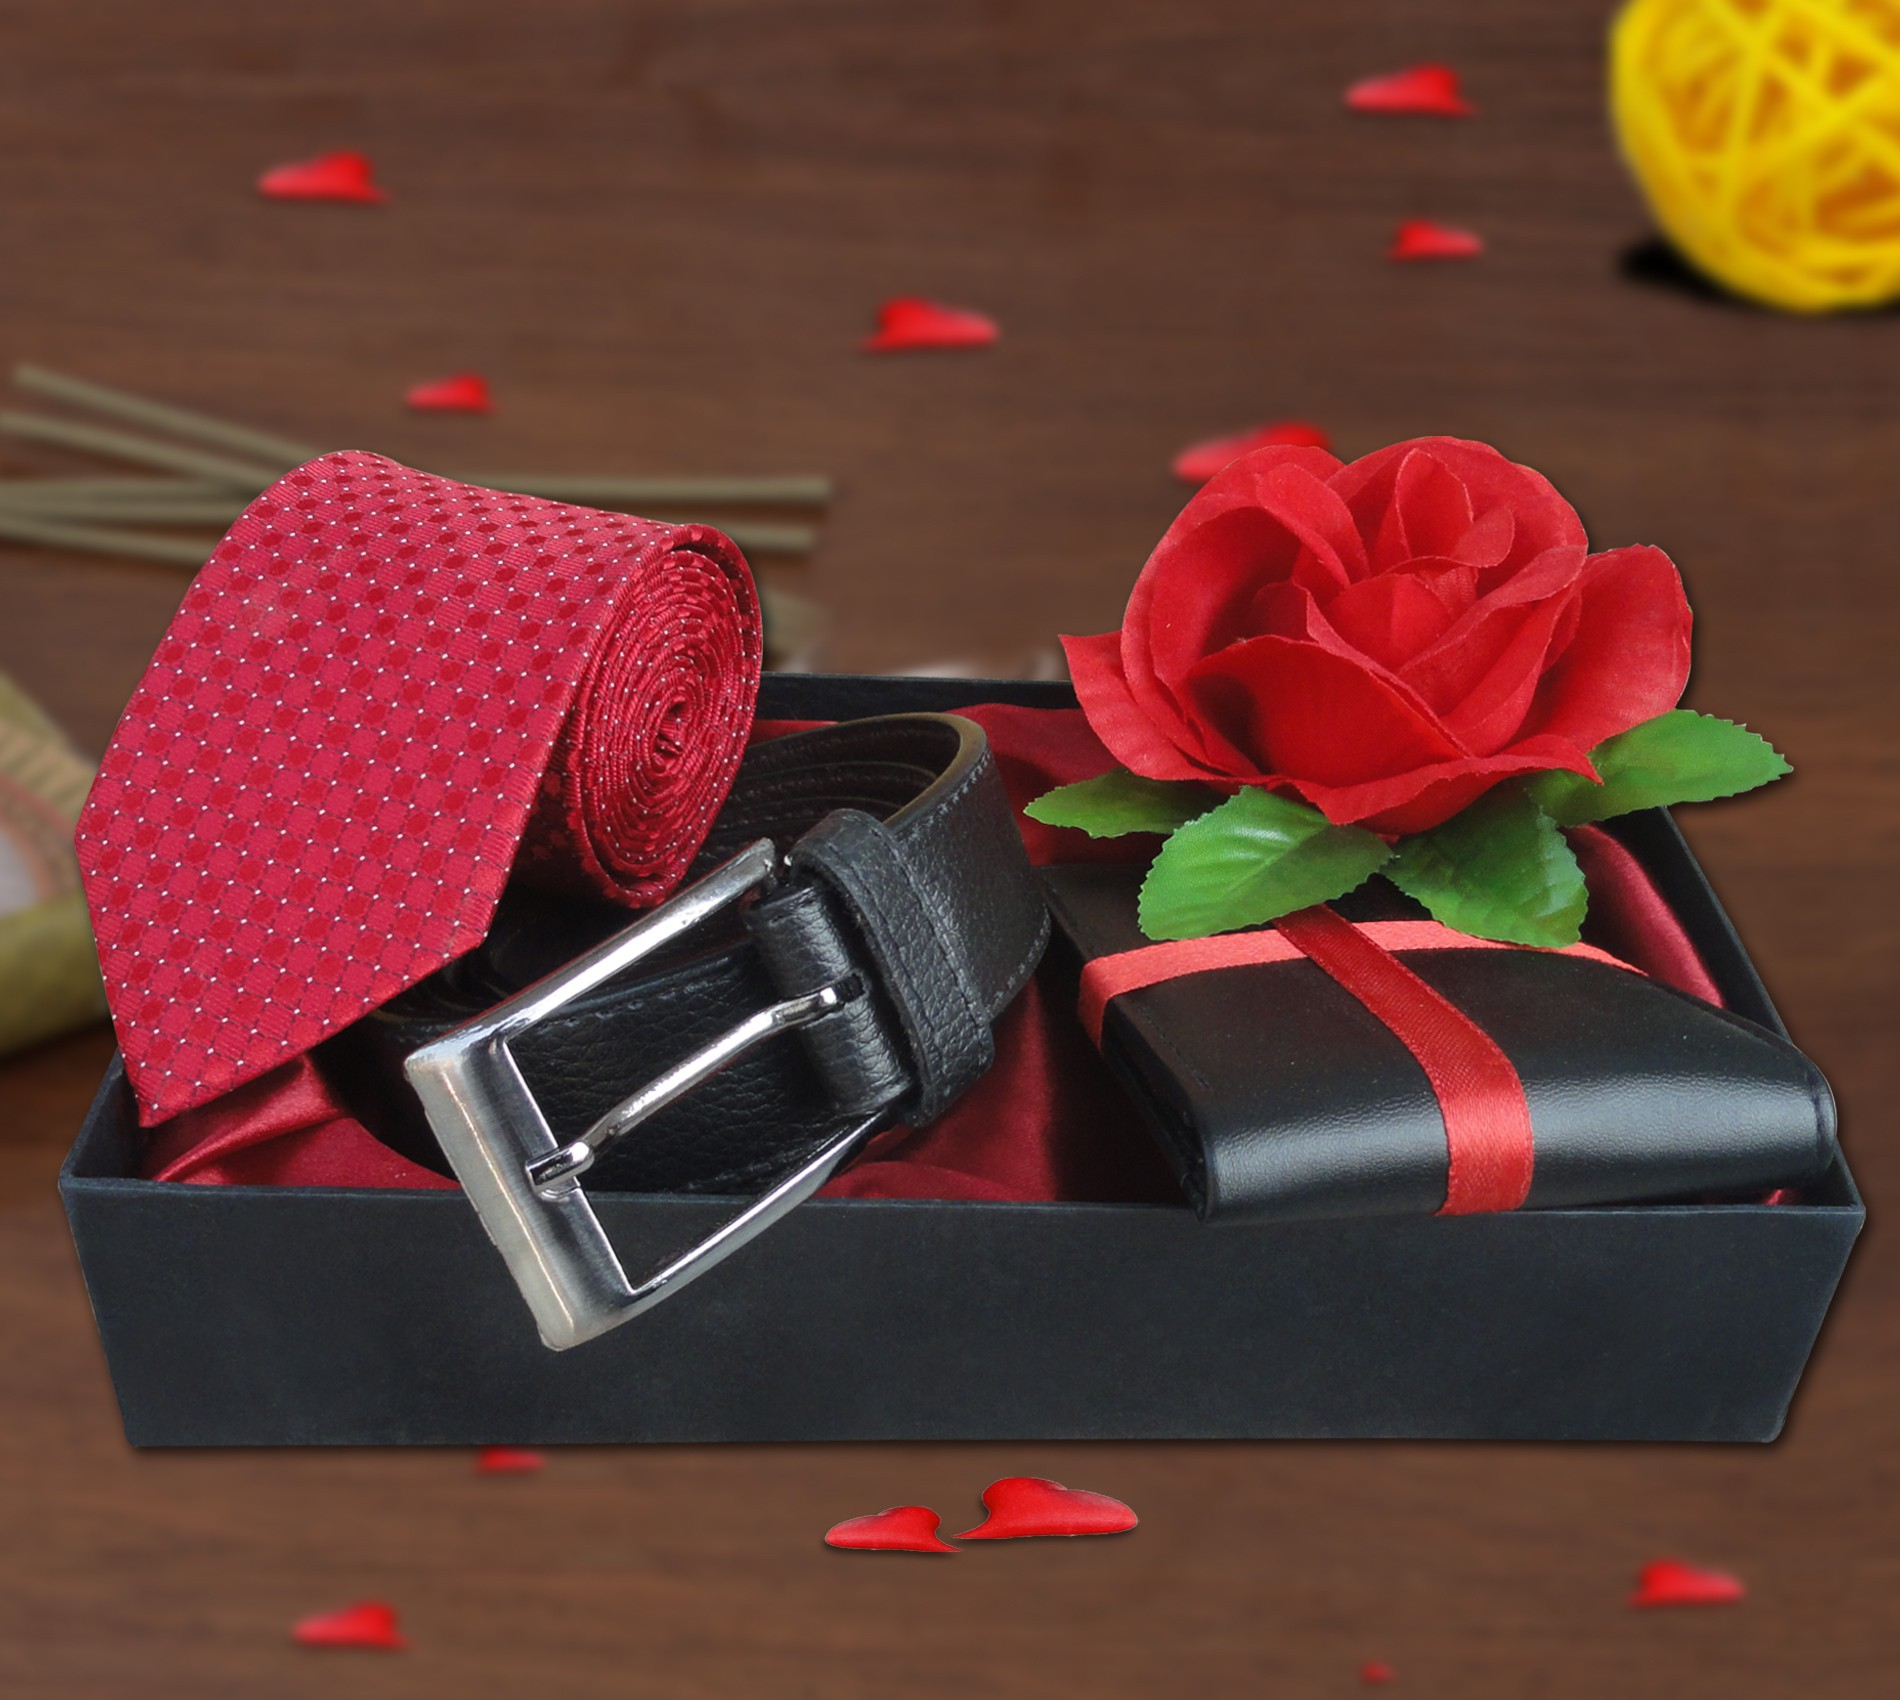 Tiedribbons TIED RIBBONS Valentinetine Day Combo Gift For Husband ...